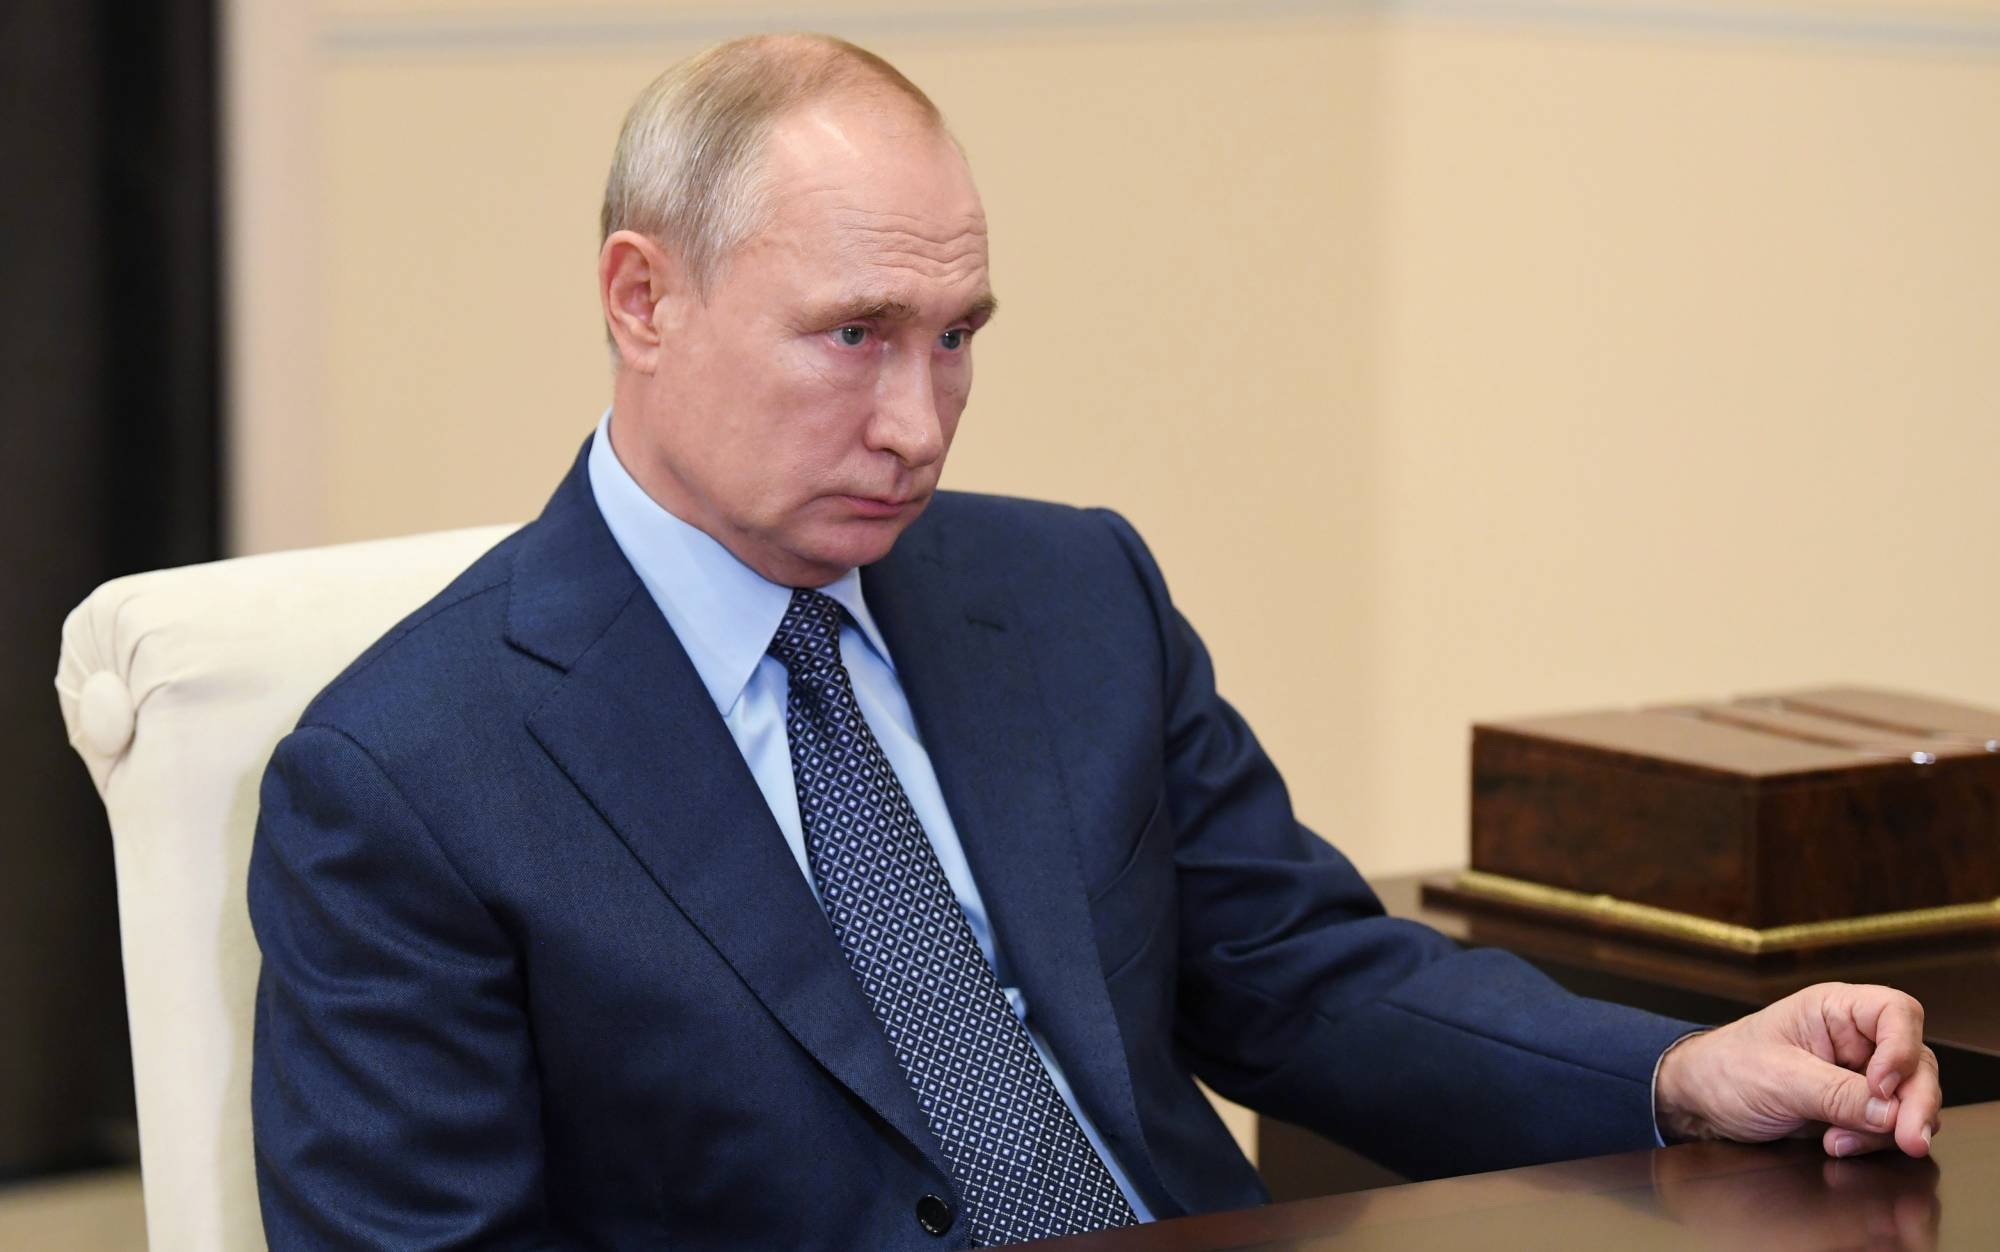 The Kremlin under President Vladimir Putin is well served by a belief that there is no line it will not cross to silence its enemies. | SPUTNIK / ALEXEI NIKOLSKY / KREMLIN VIA /  REUTERS